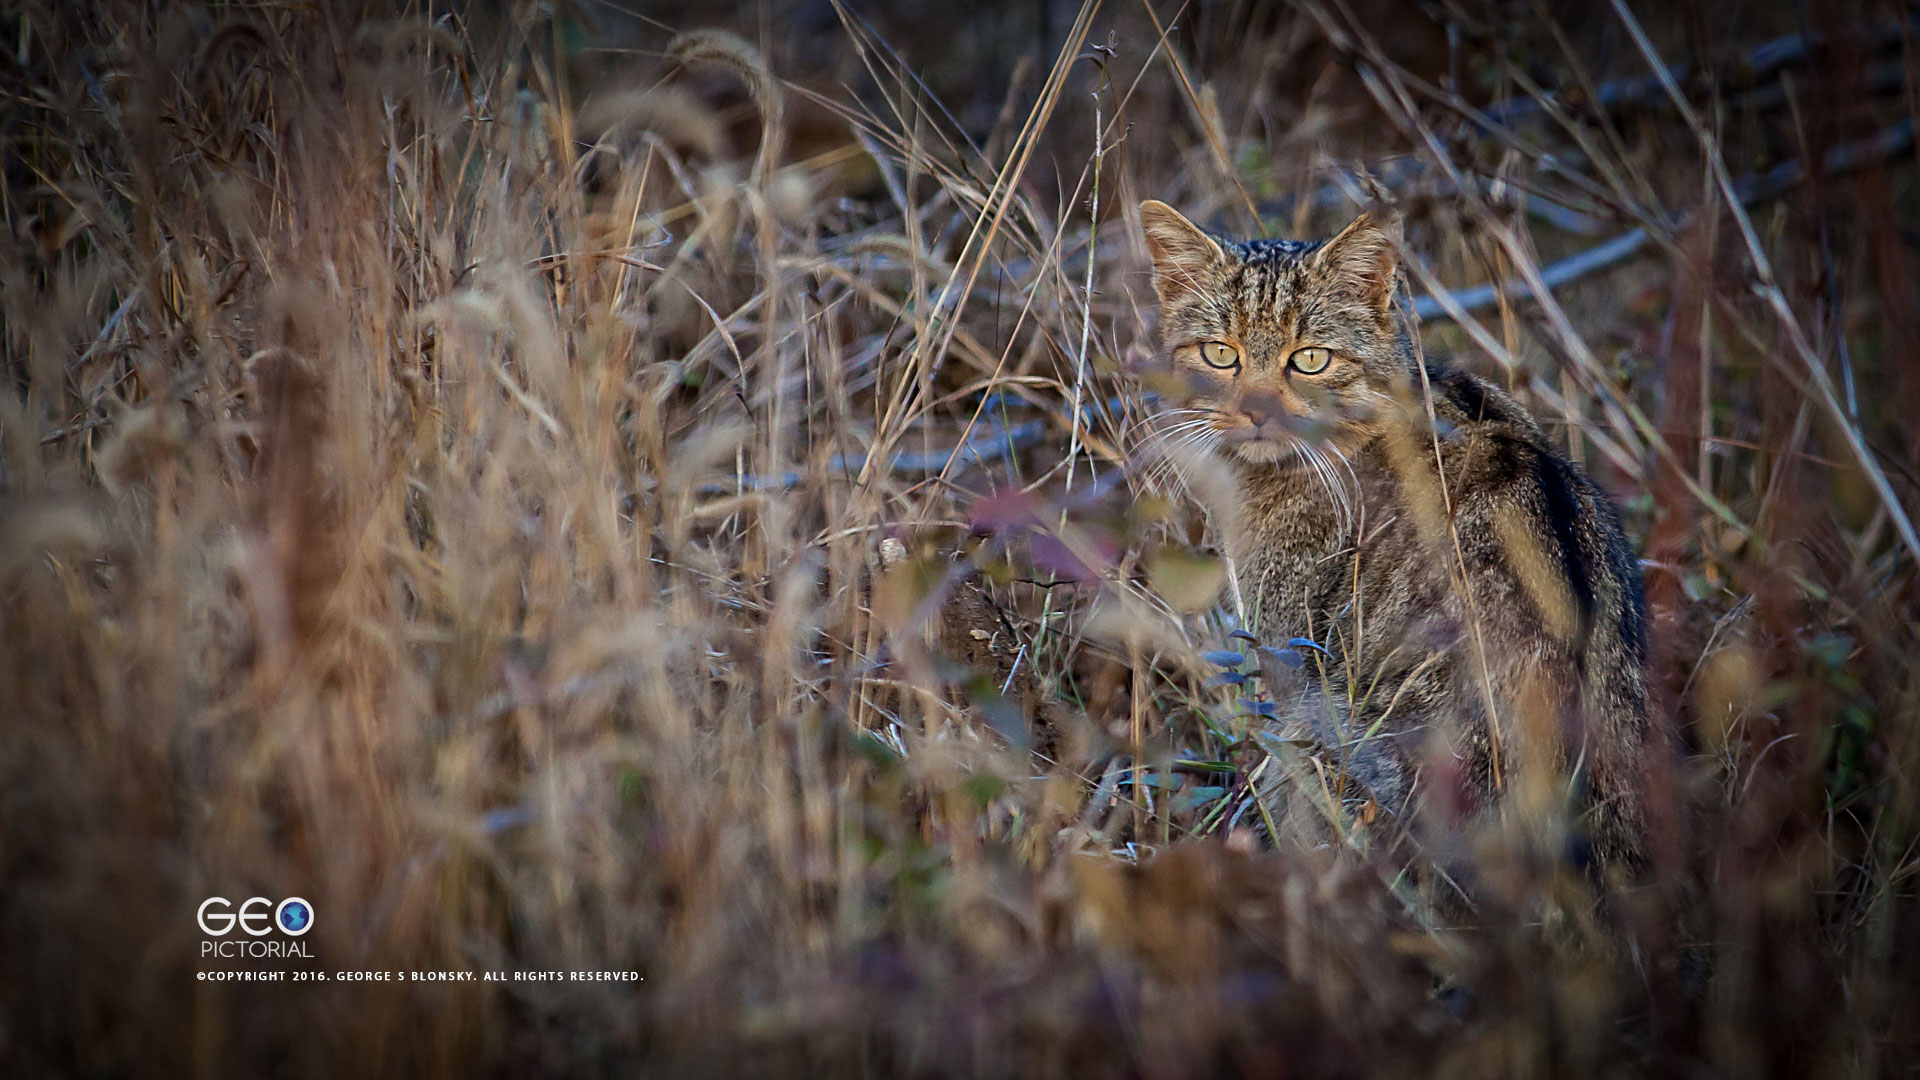 WILD CAT PHOTOGRAPHED DURING ONE OF OUR WINTER WILDLIFE PHOTOGRAPHY WORKSHOPS AT LAKE KERKINI